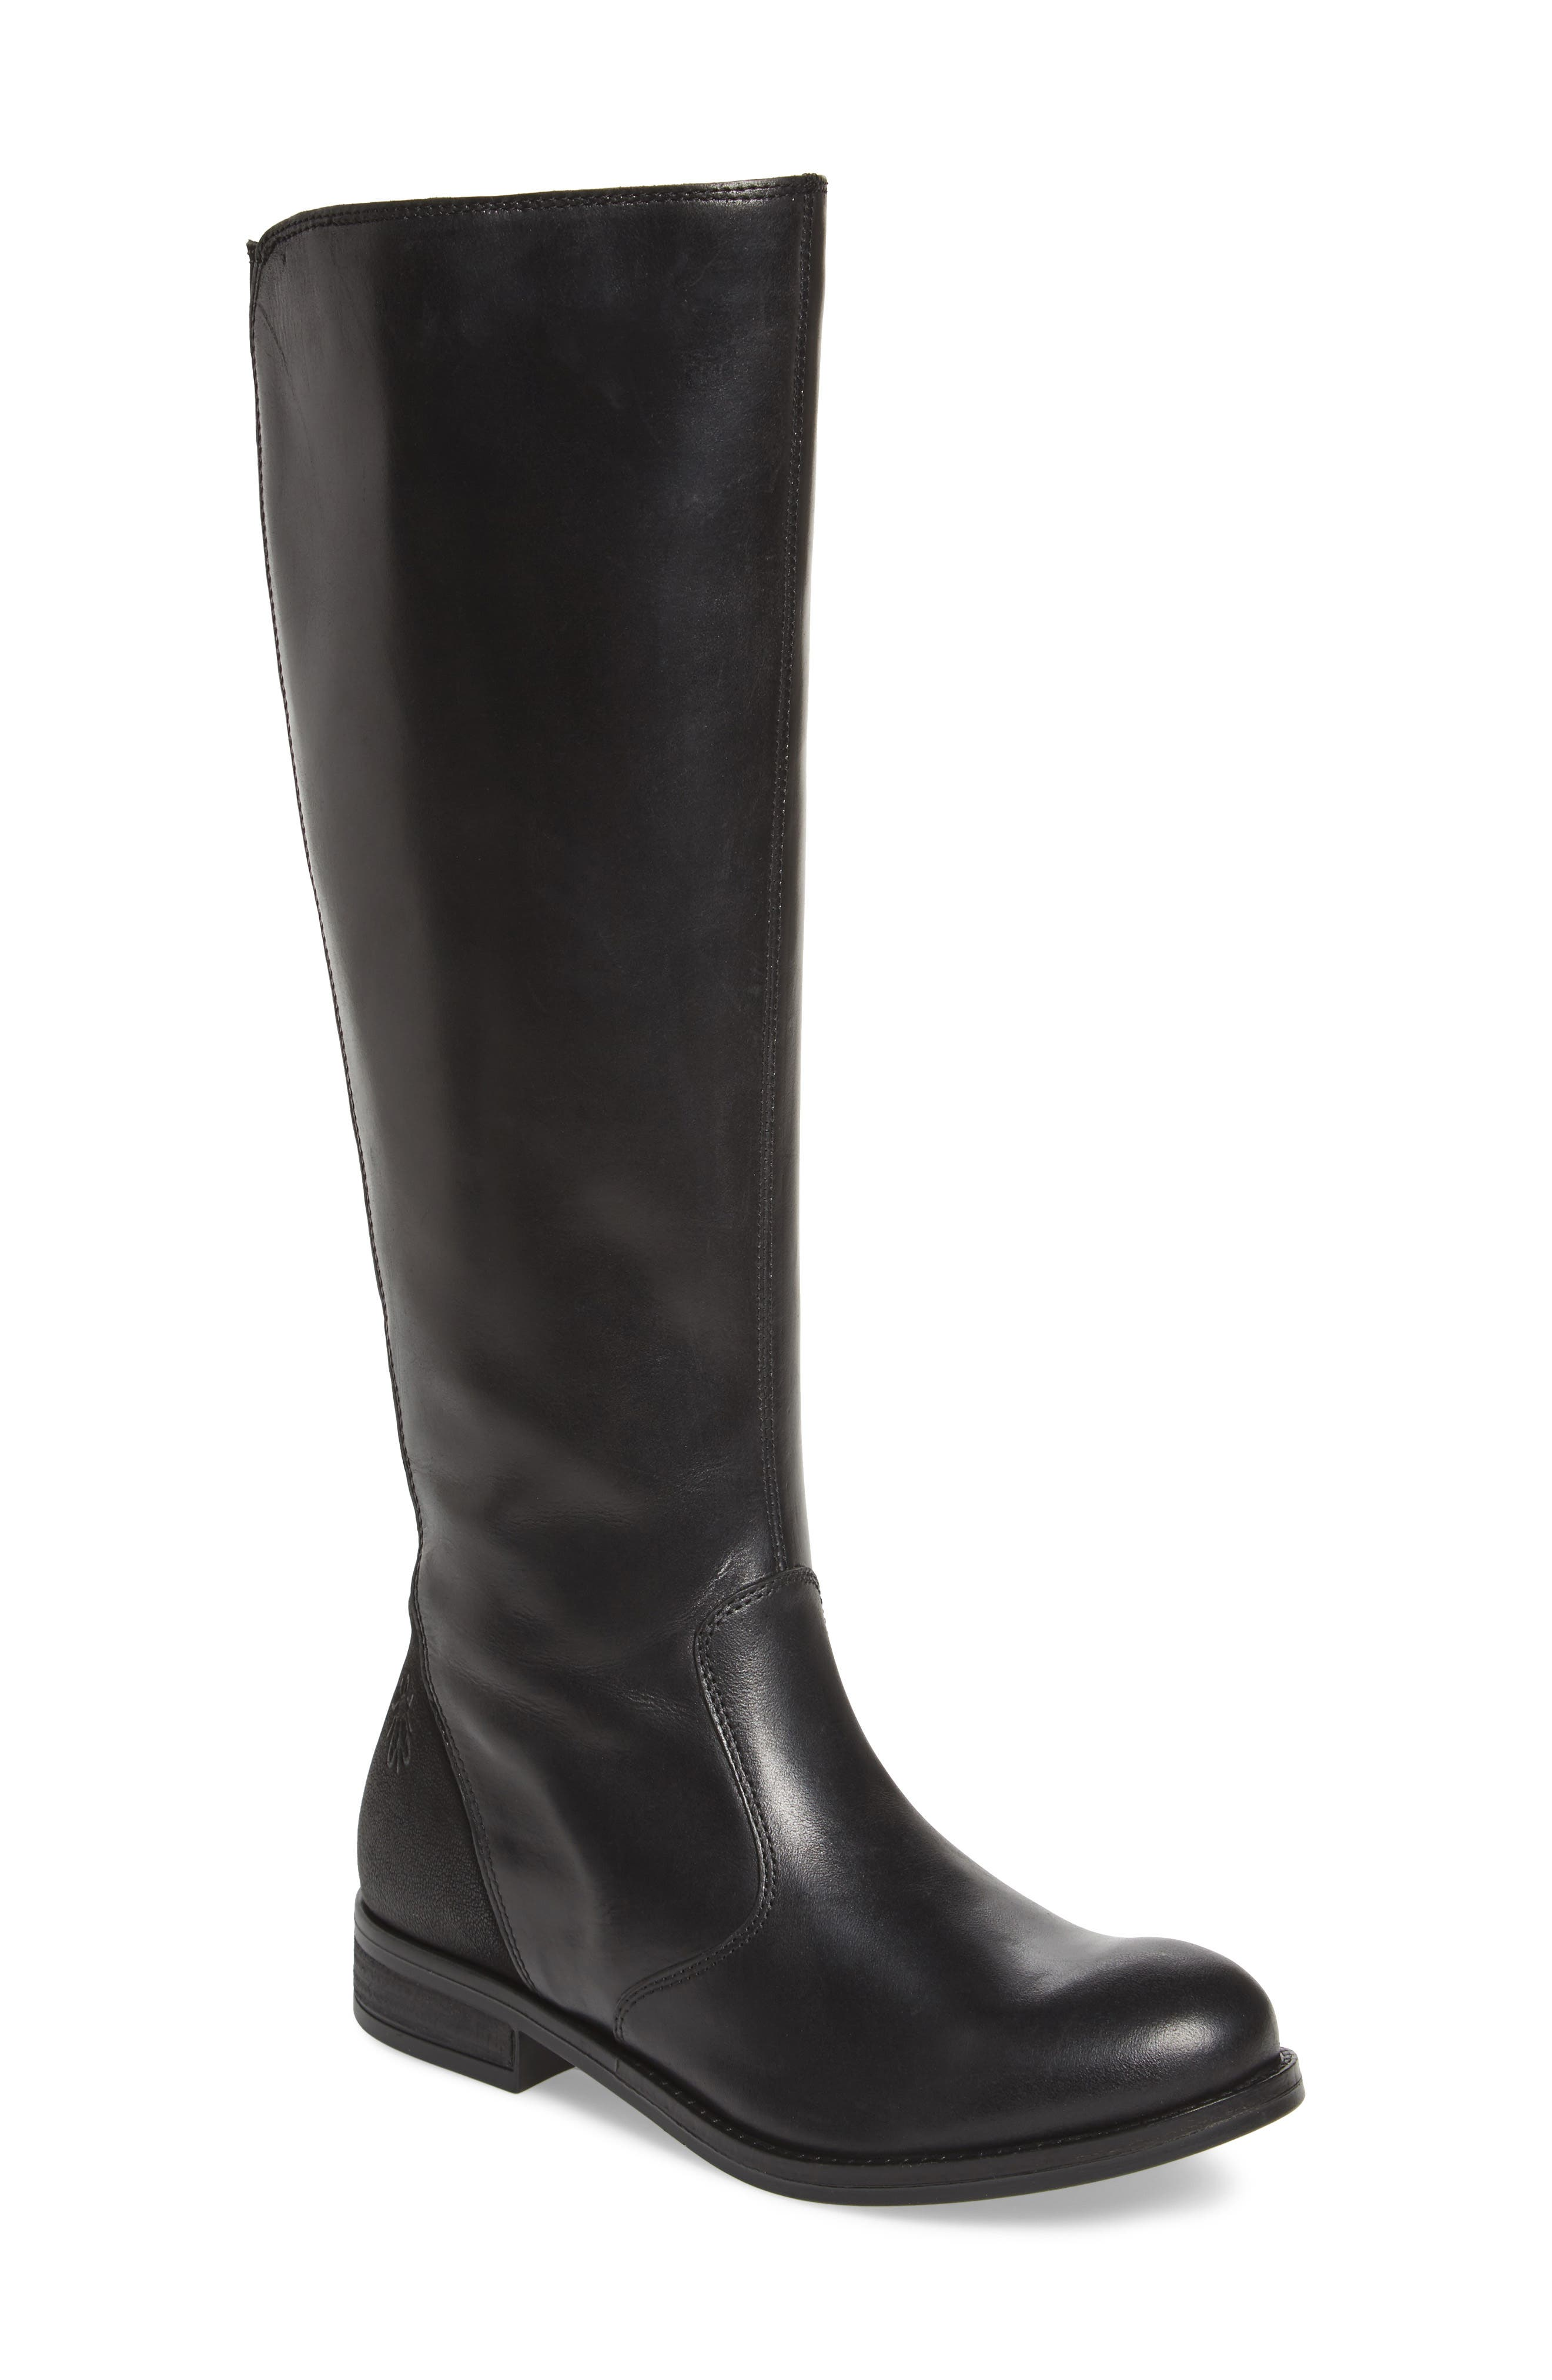 Main Image - Fly London Axil Elastic Back Riding Boot (Women)